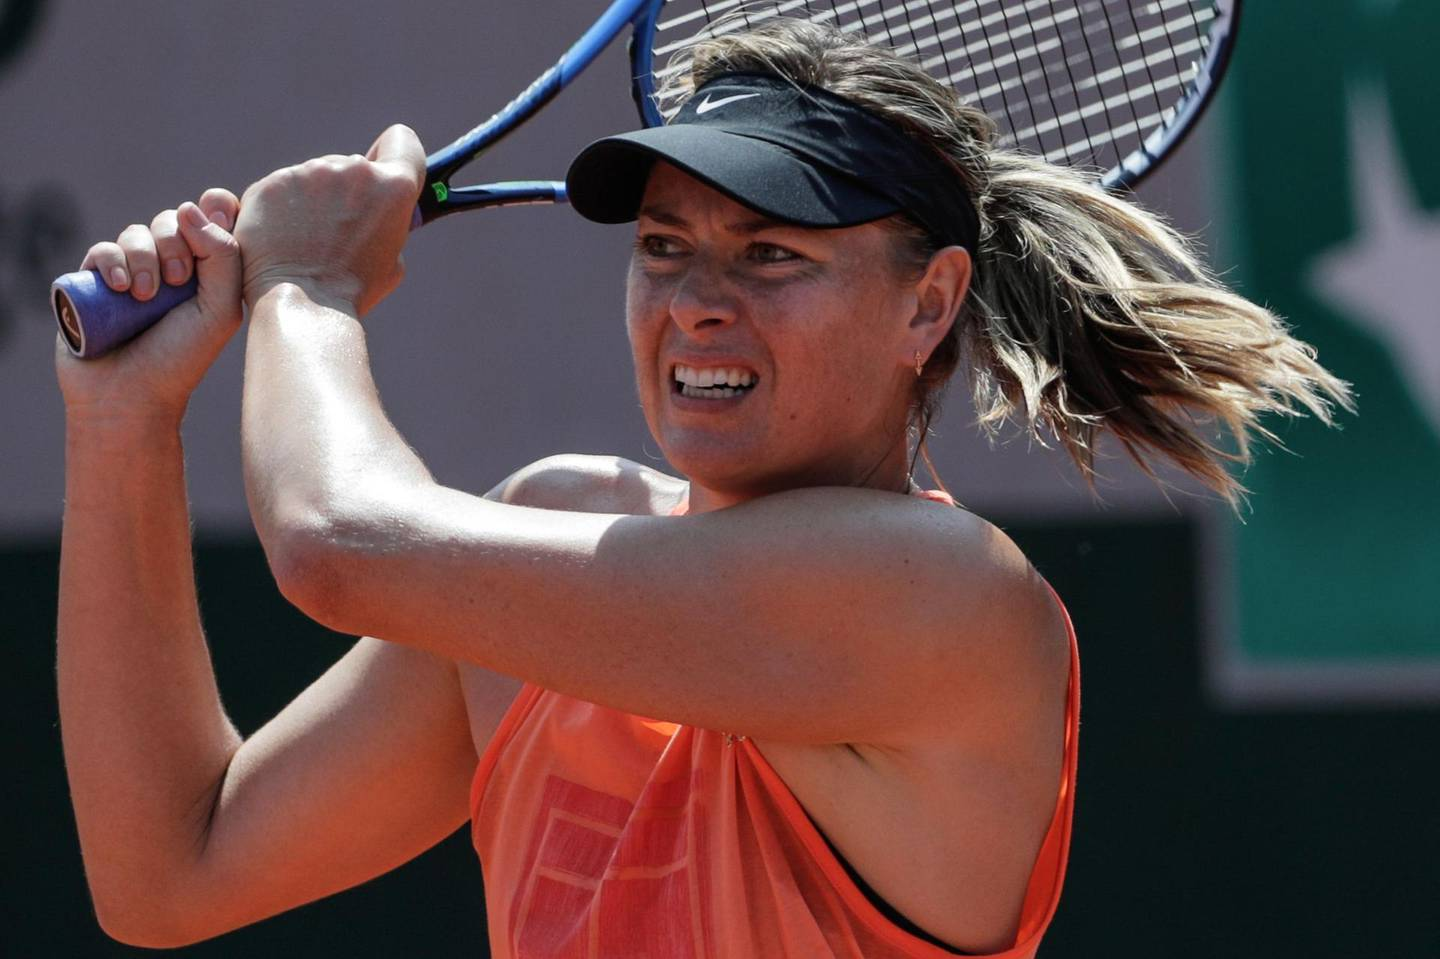 Russia's Maria Sharapova attends a training session at the Roland Garros stadium on May 25, 2018 in Paris, ahead of 2018 French Open tennis tournament.  / AFP / Thomas SAMSON